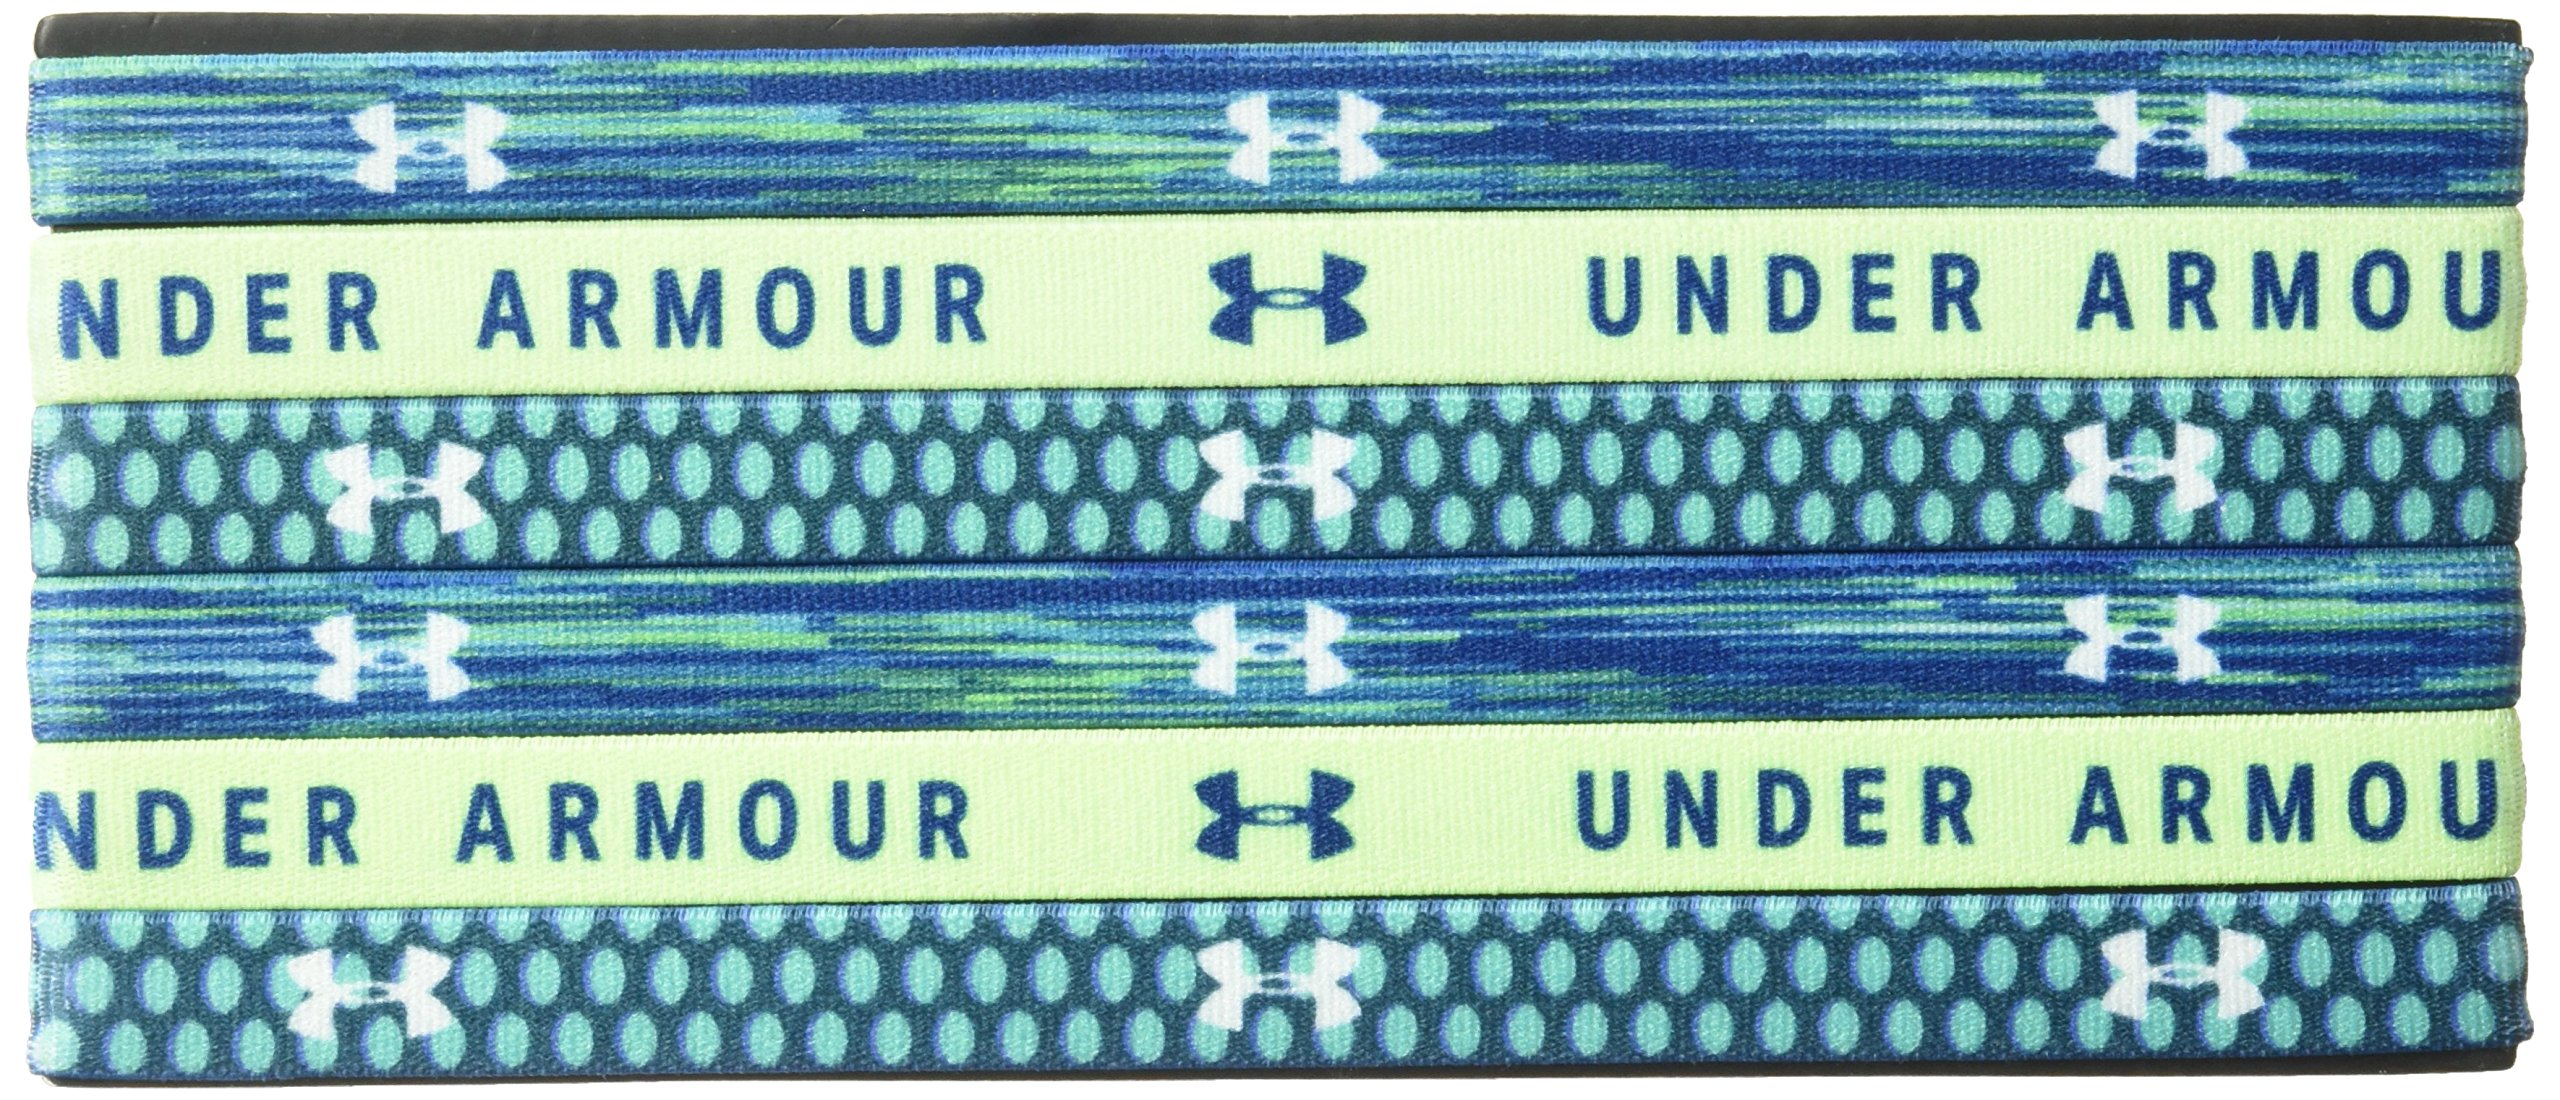 Under Armour Girls' Graphic Headbands - 6 Pack, Moroccan Blue (487)/White, One Size Fits All by Under Armour (Image #1)